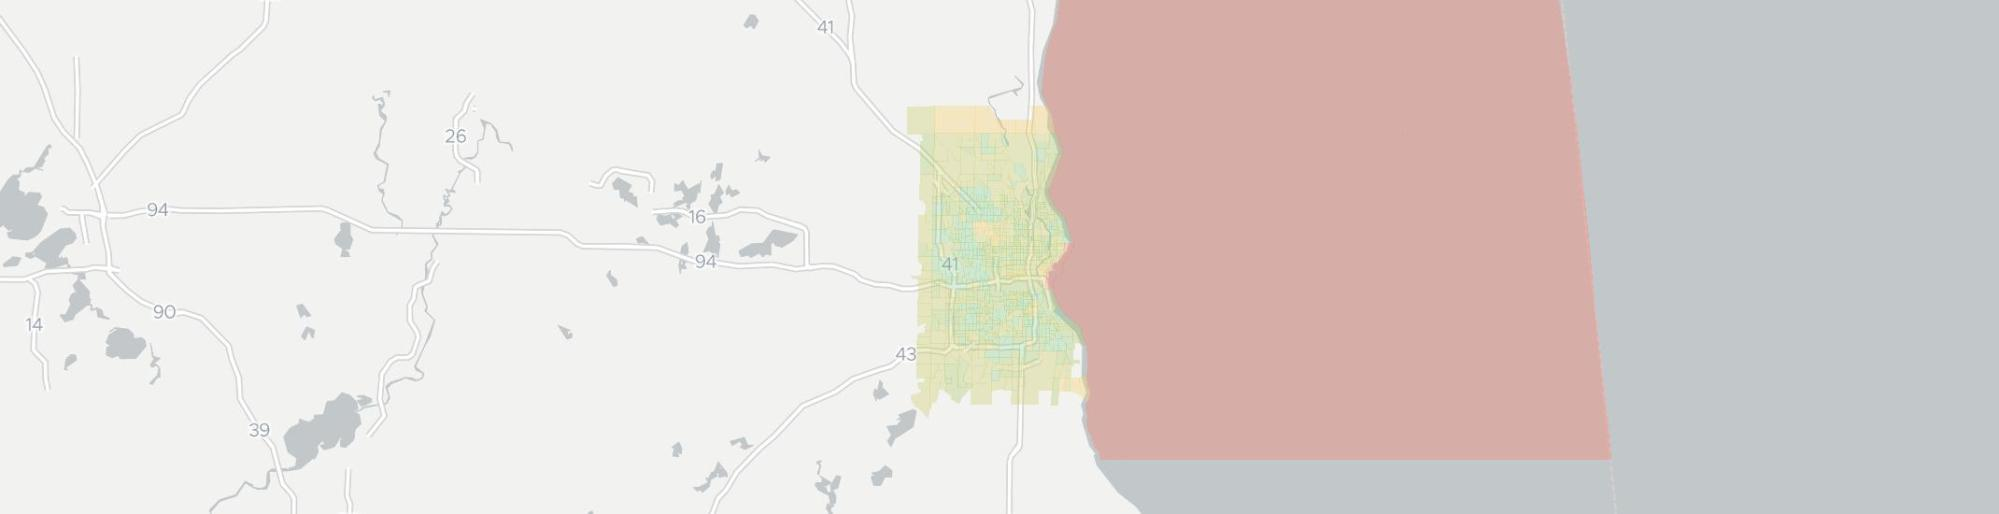 hight resolution of internet provider competition map for milwaukee